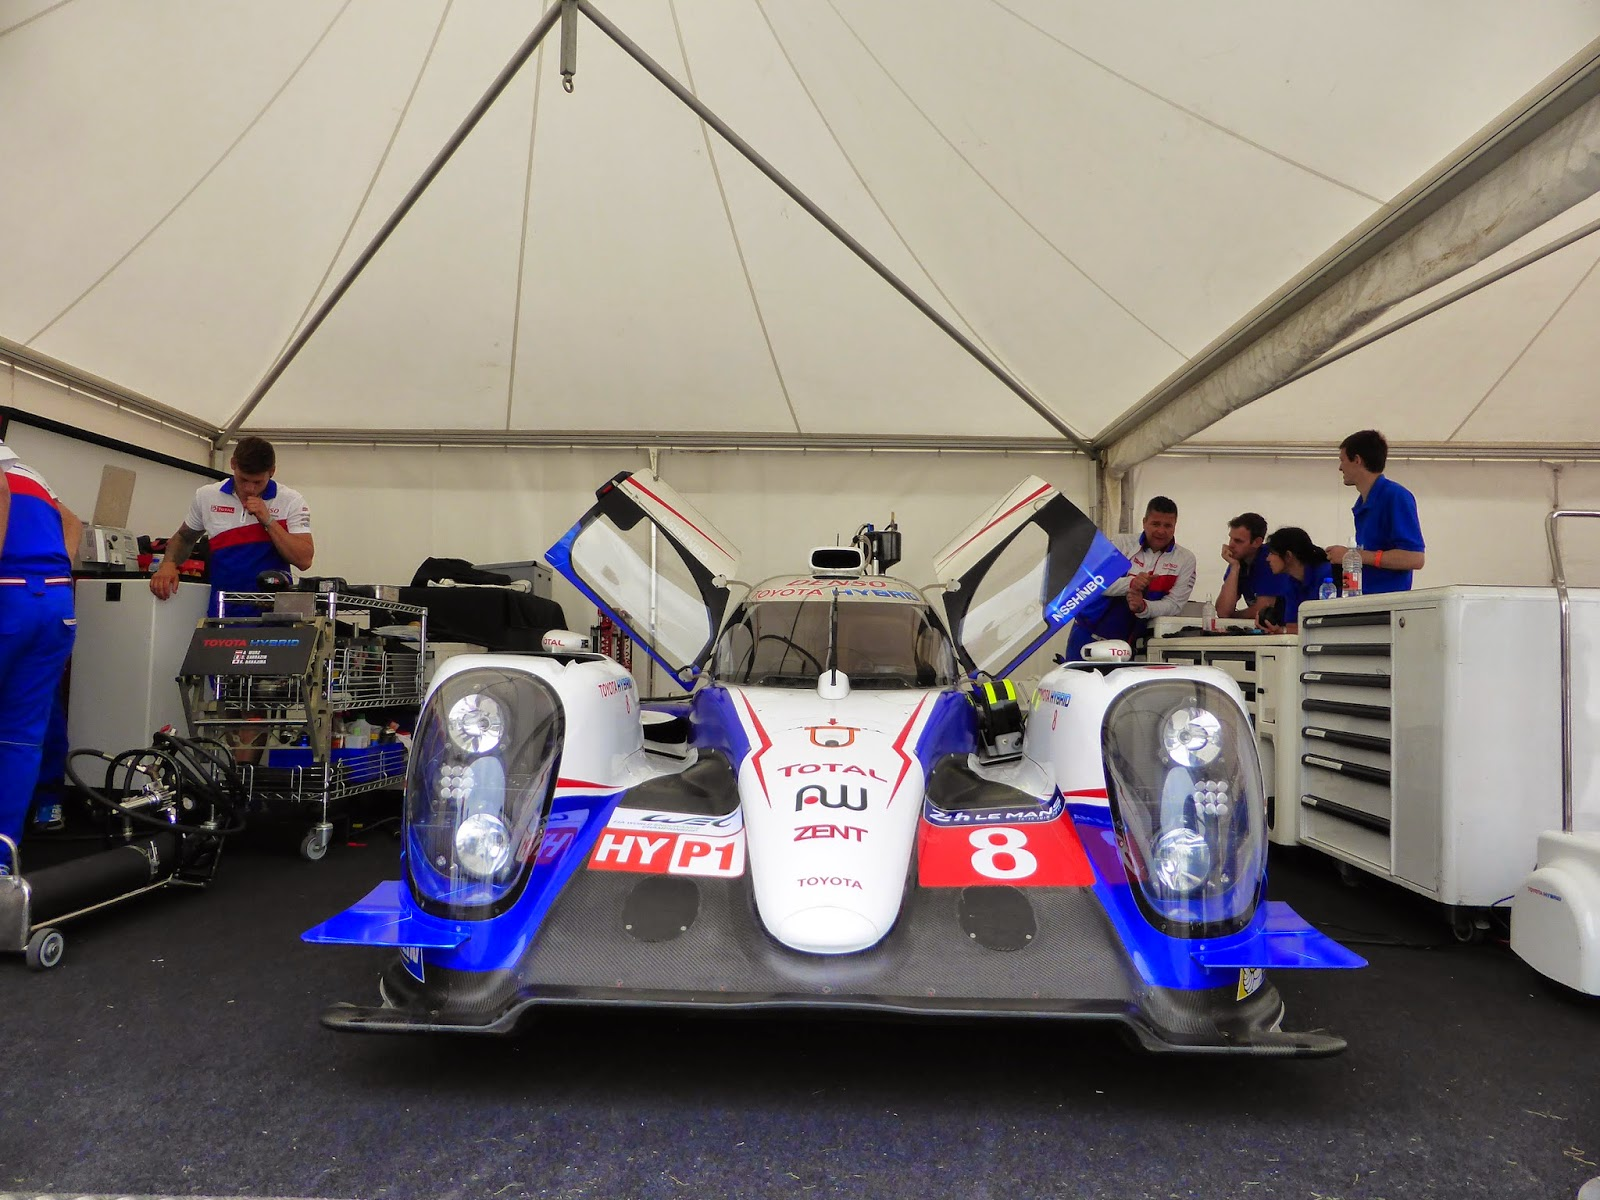 Toyota TS040 Hybrid no.8, as driven by Anthony Davidson